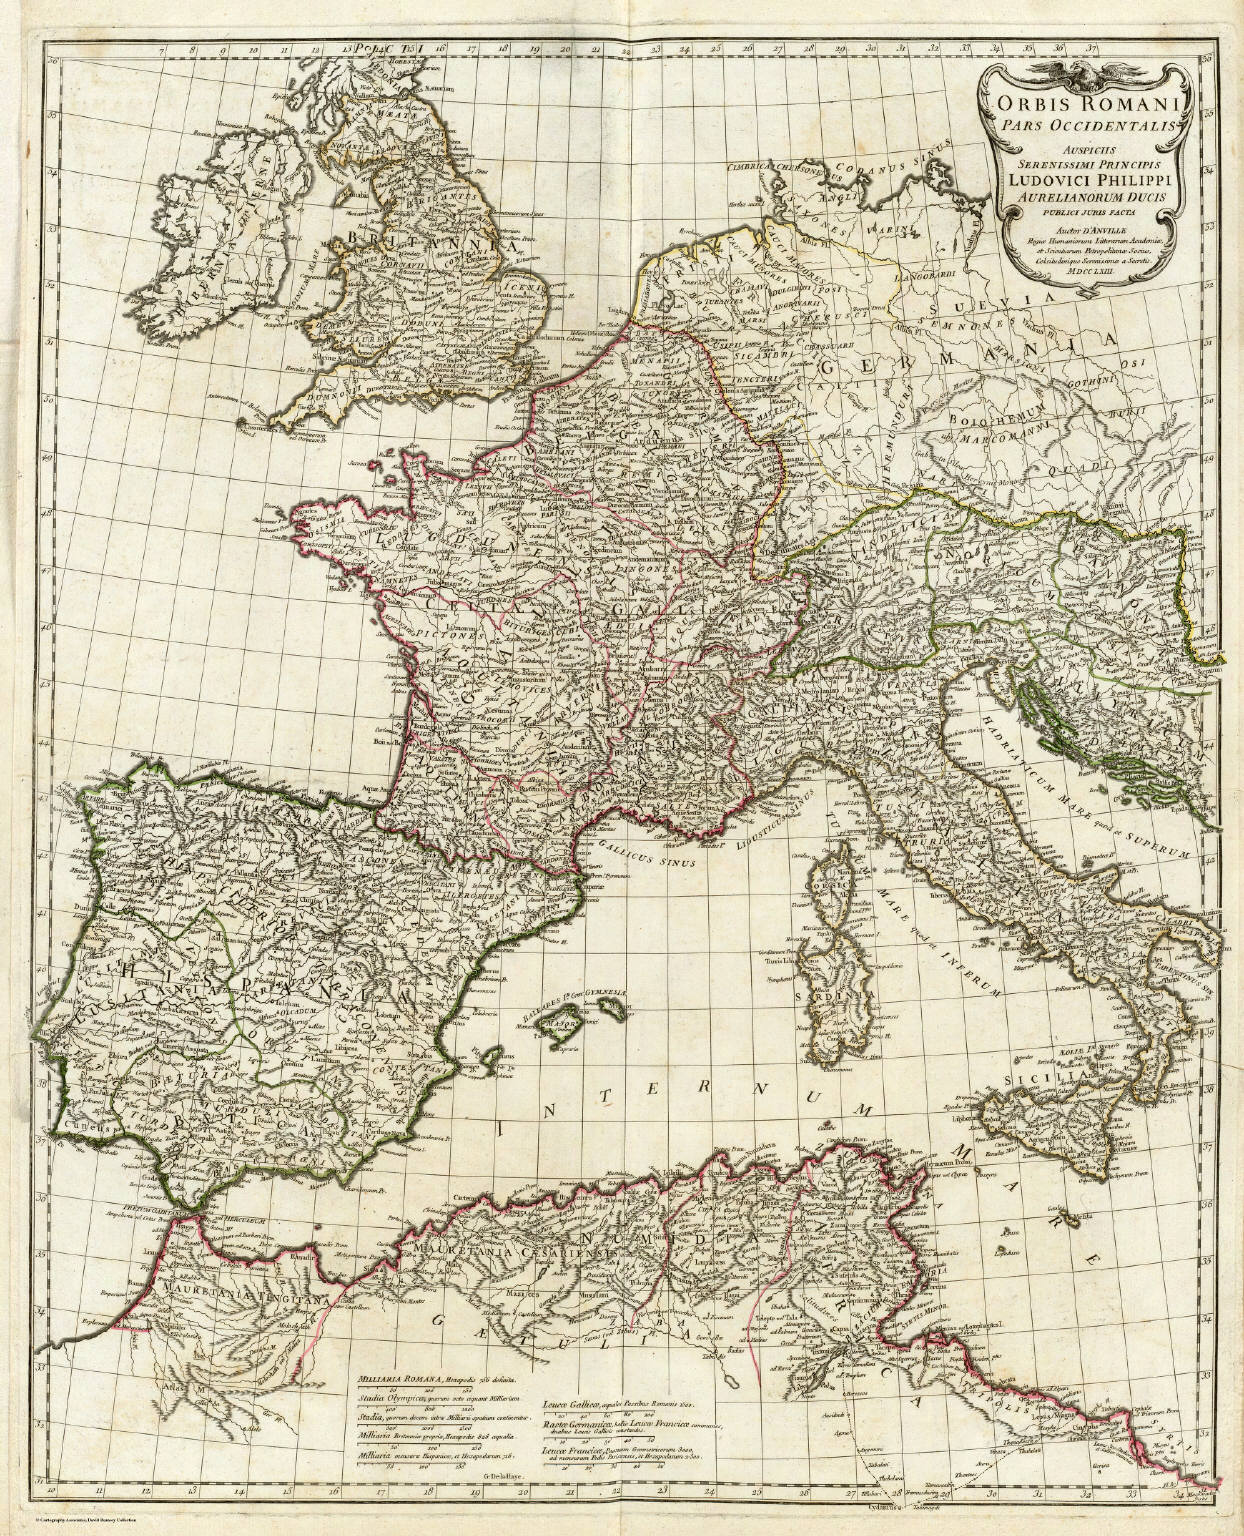 Orbis Romani Pars Occidentalis David Rumsey Historical Map - Pars map